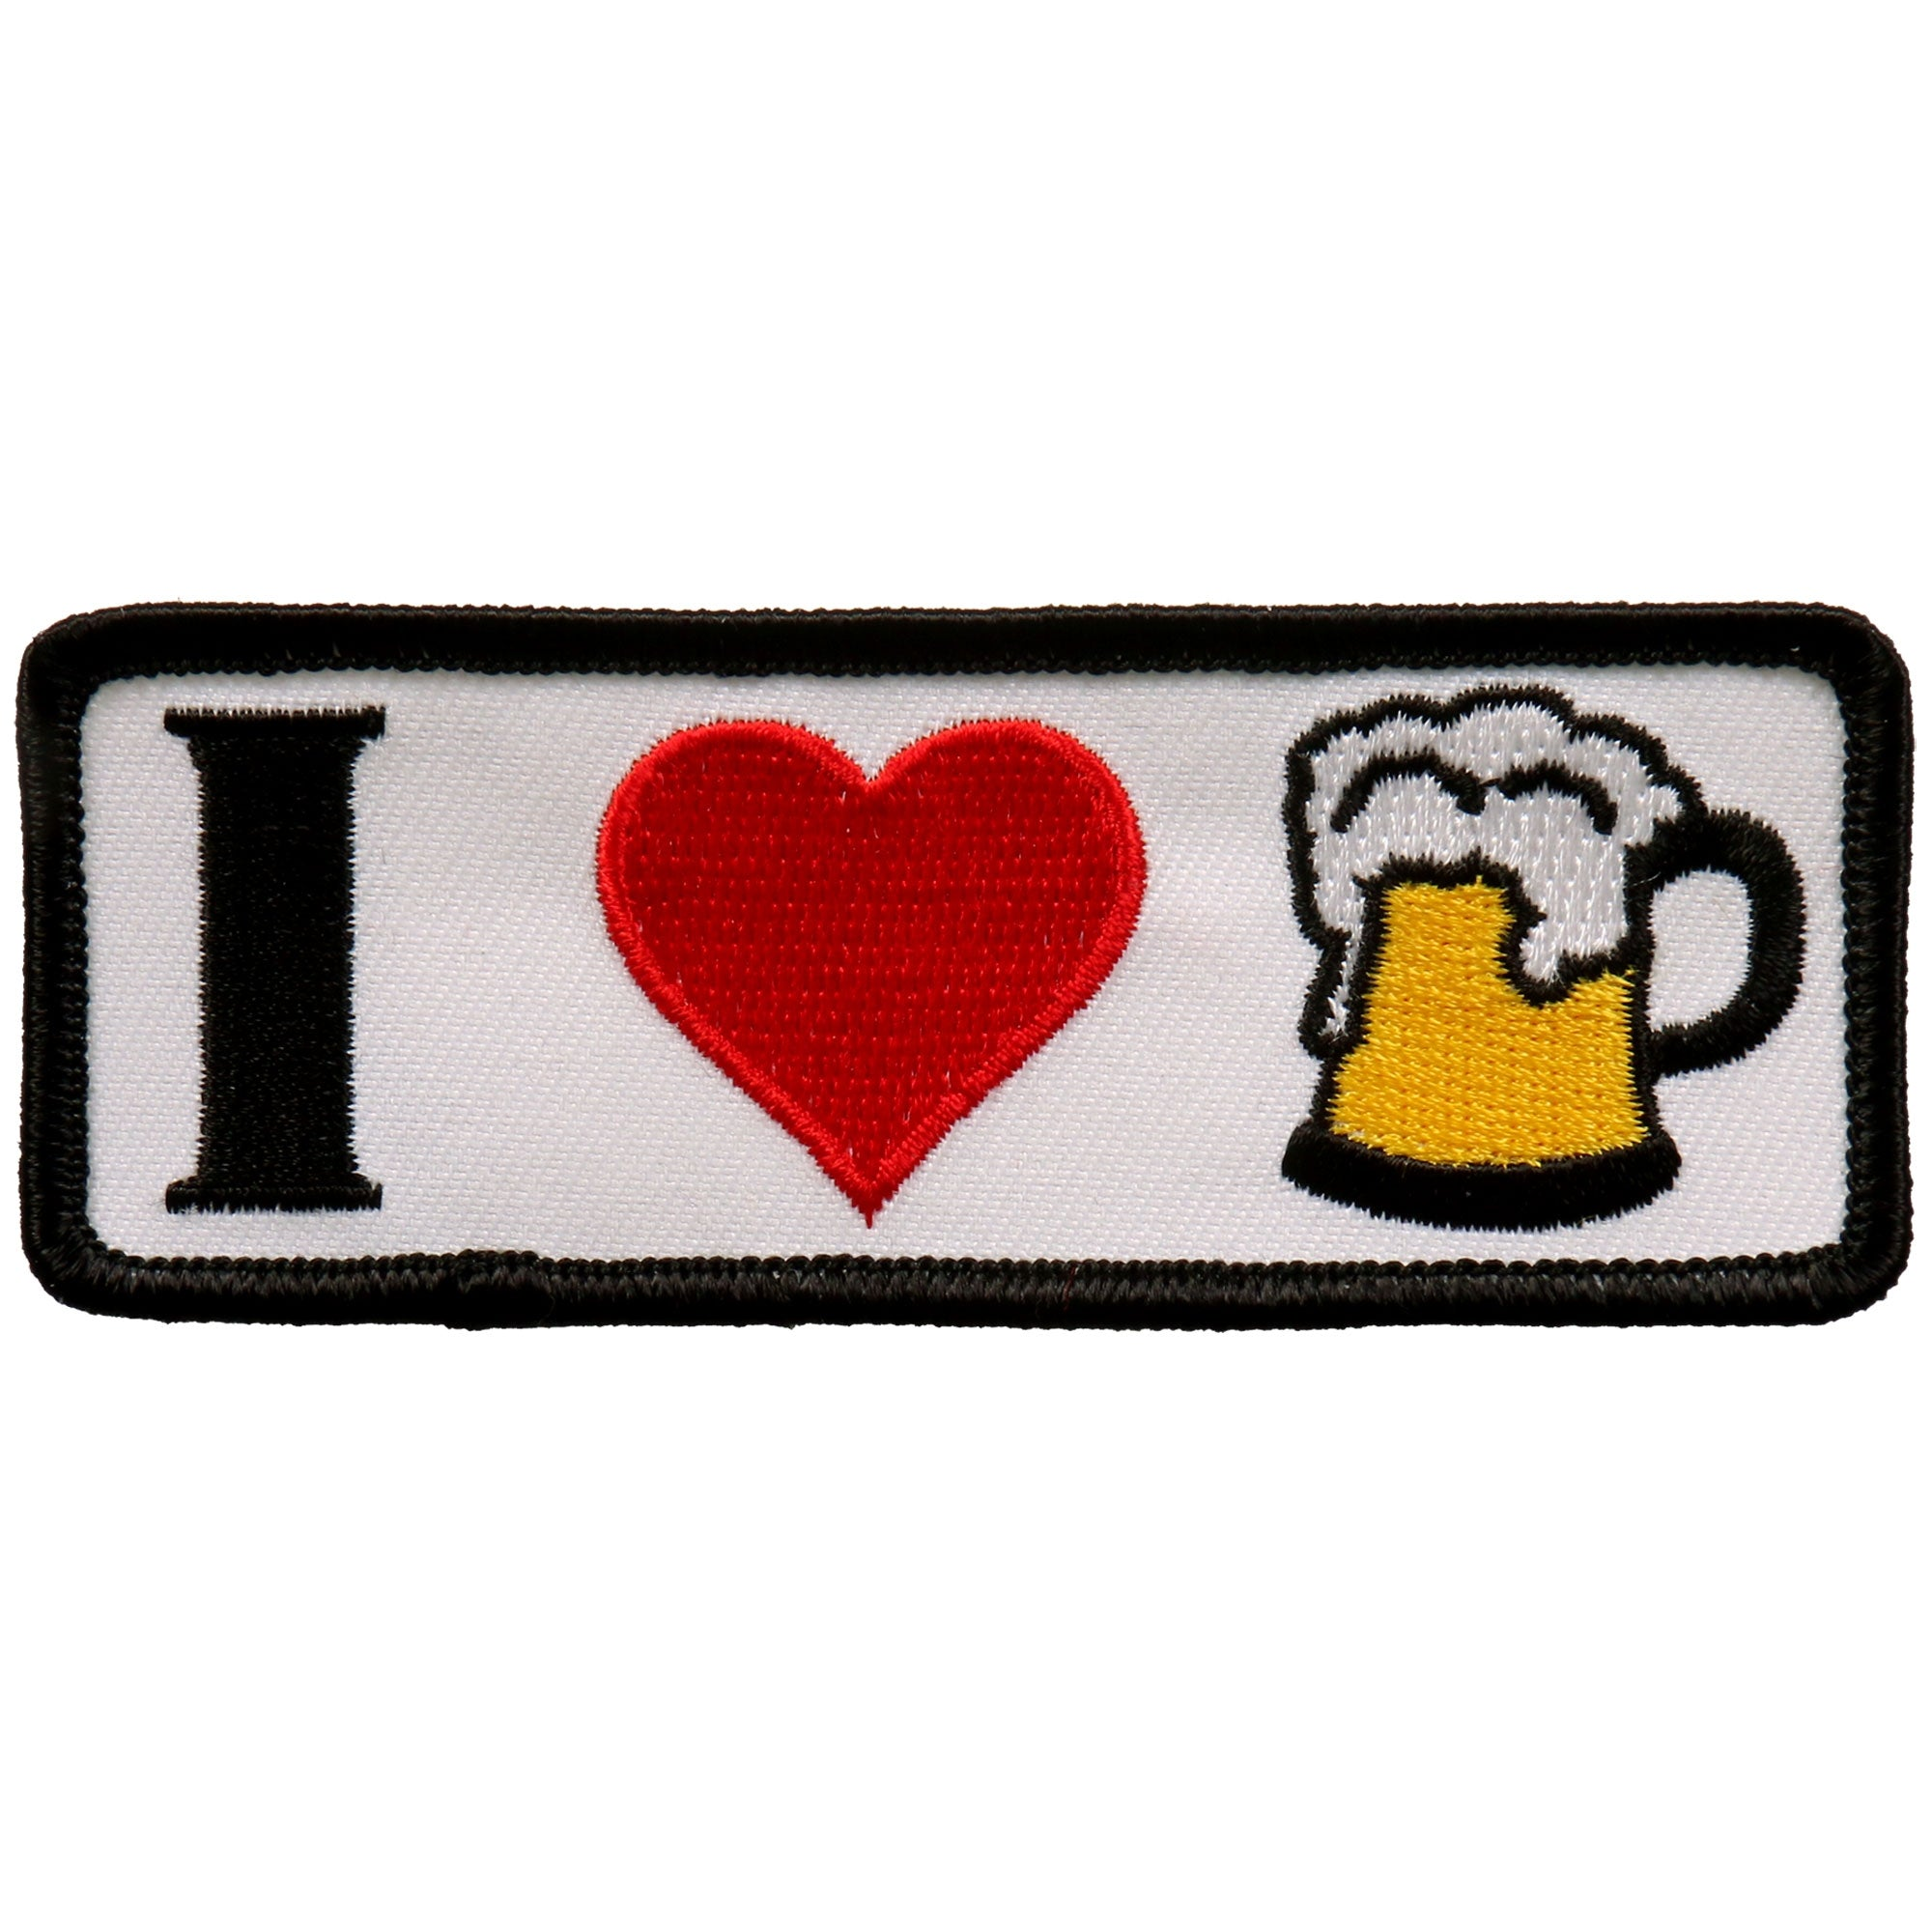 "Hot Leathers I Heart Beer 4""x2"" Patch"